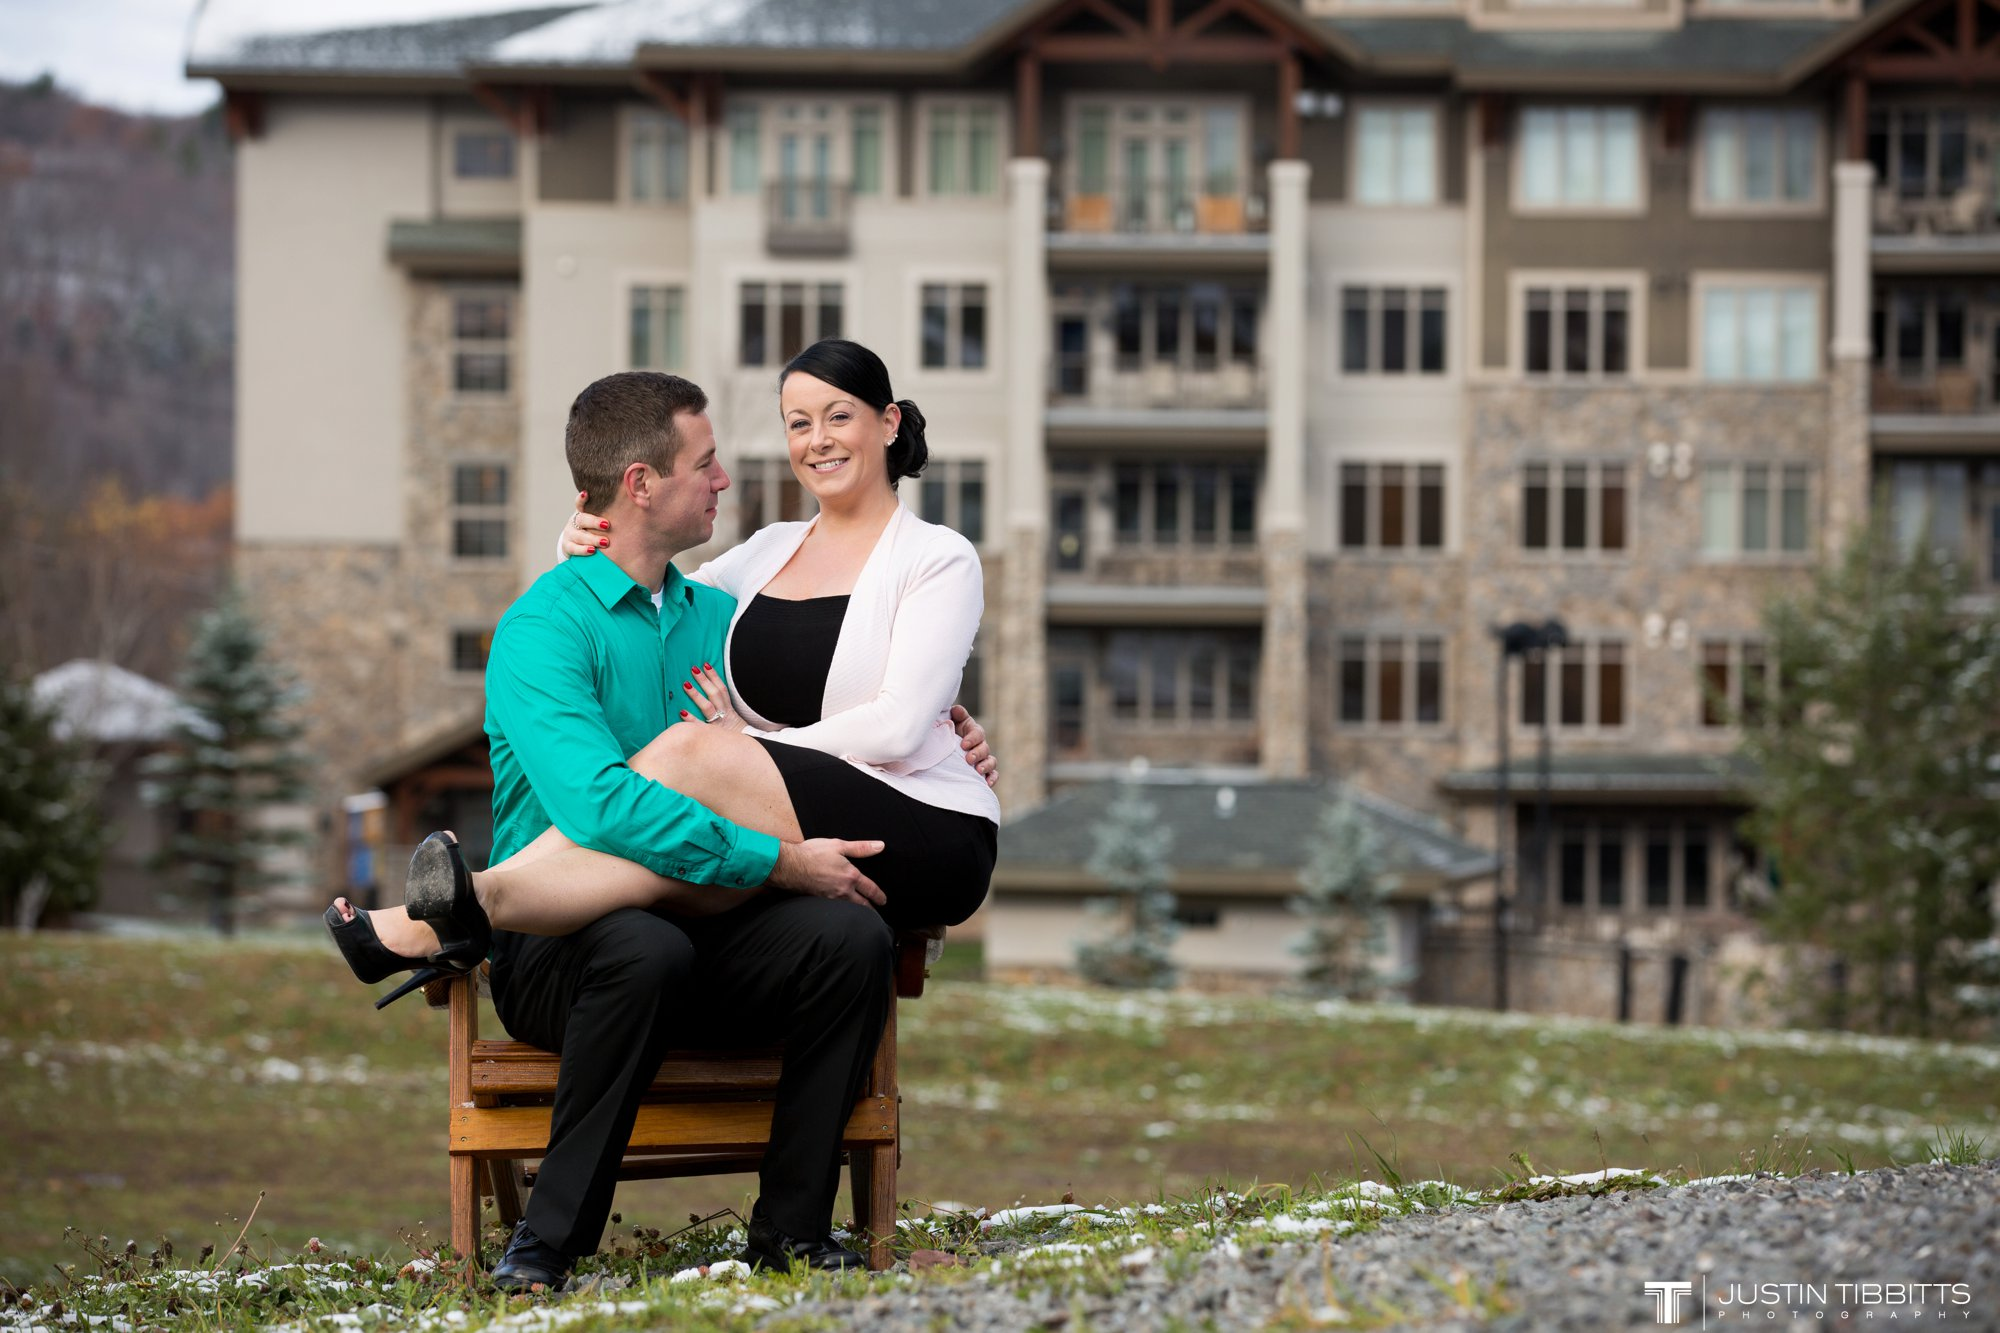 Justin Tibbitts Photography Kristie and Gregs Windham Mountain Resort Engagement Shoot-39